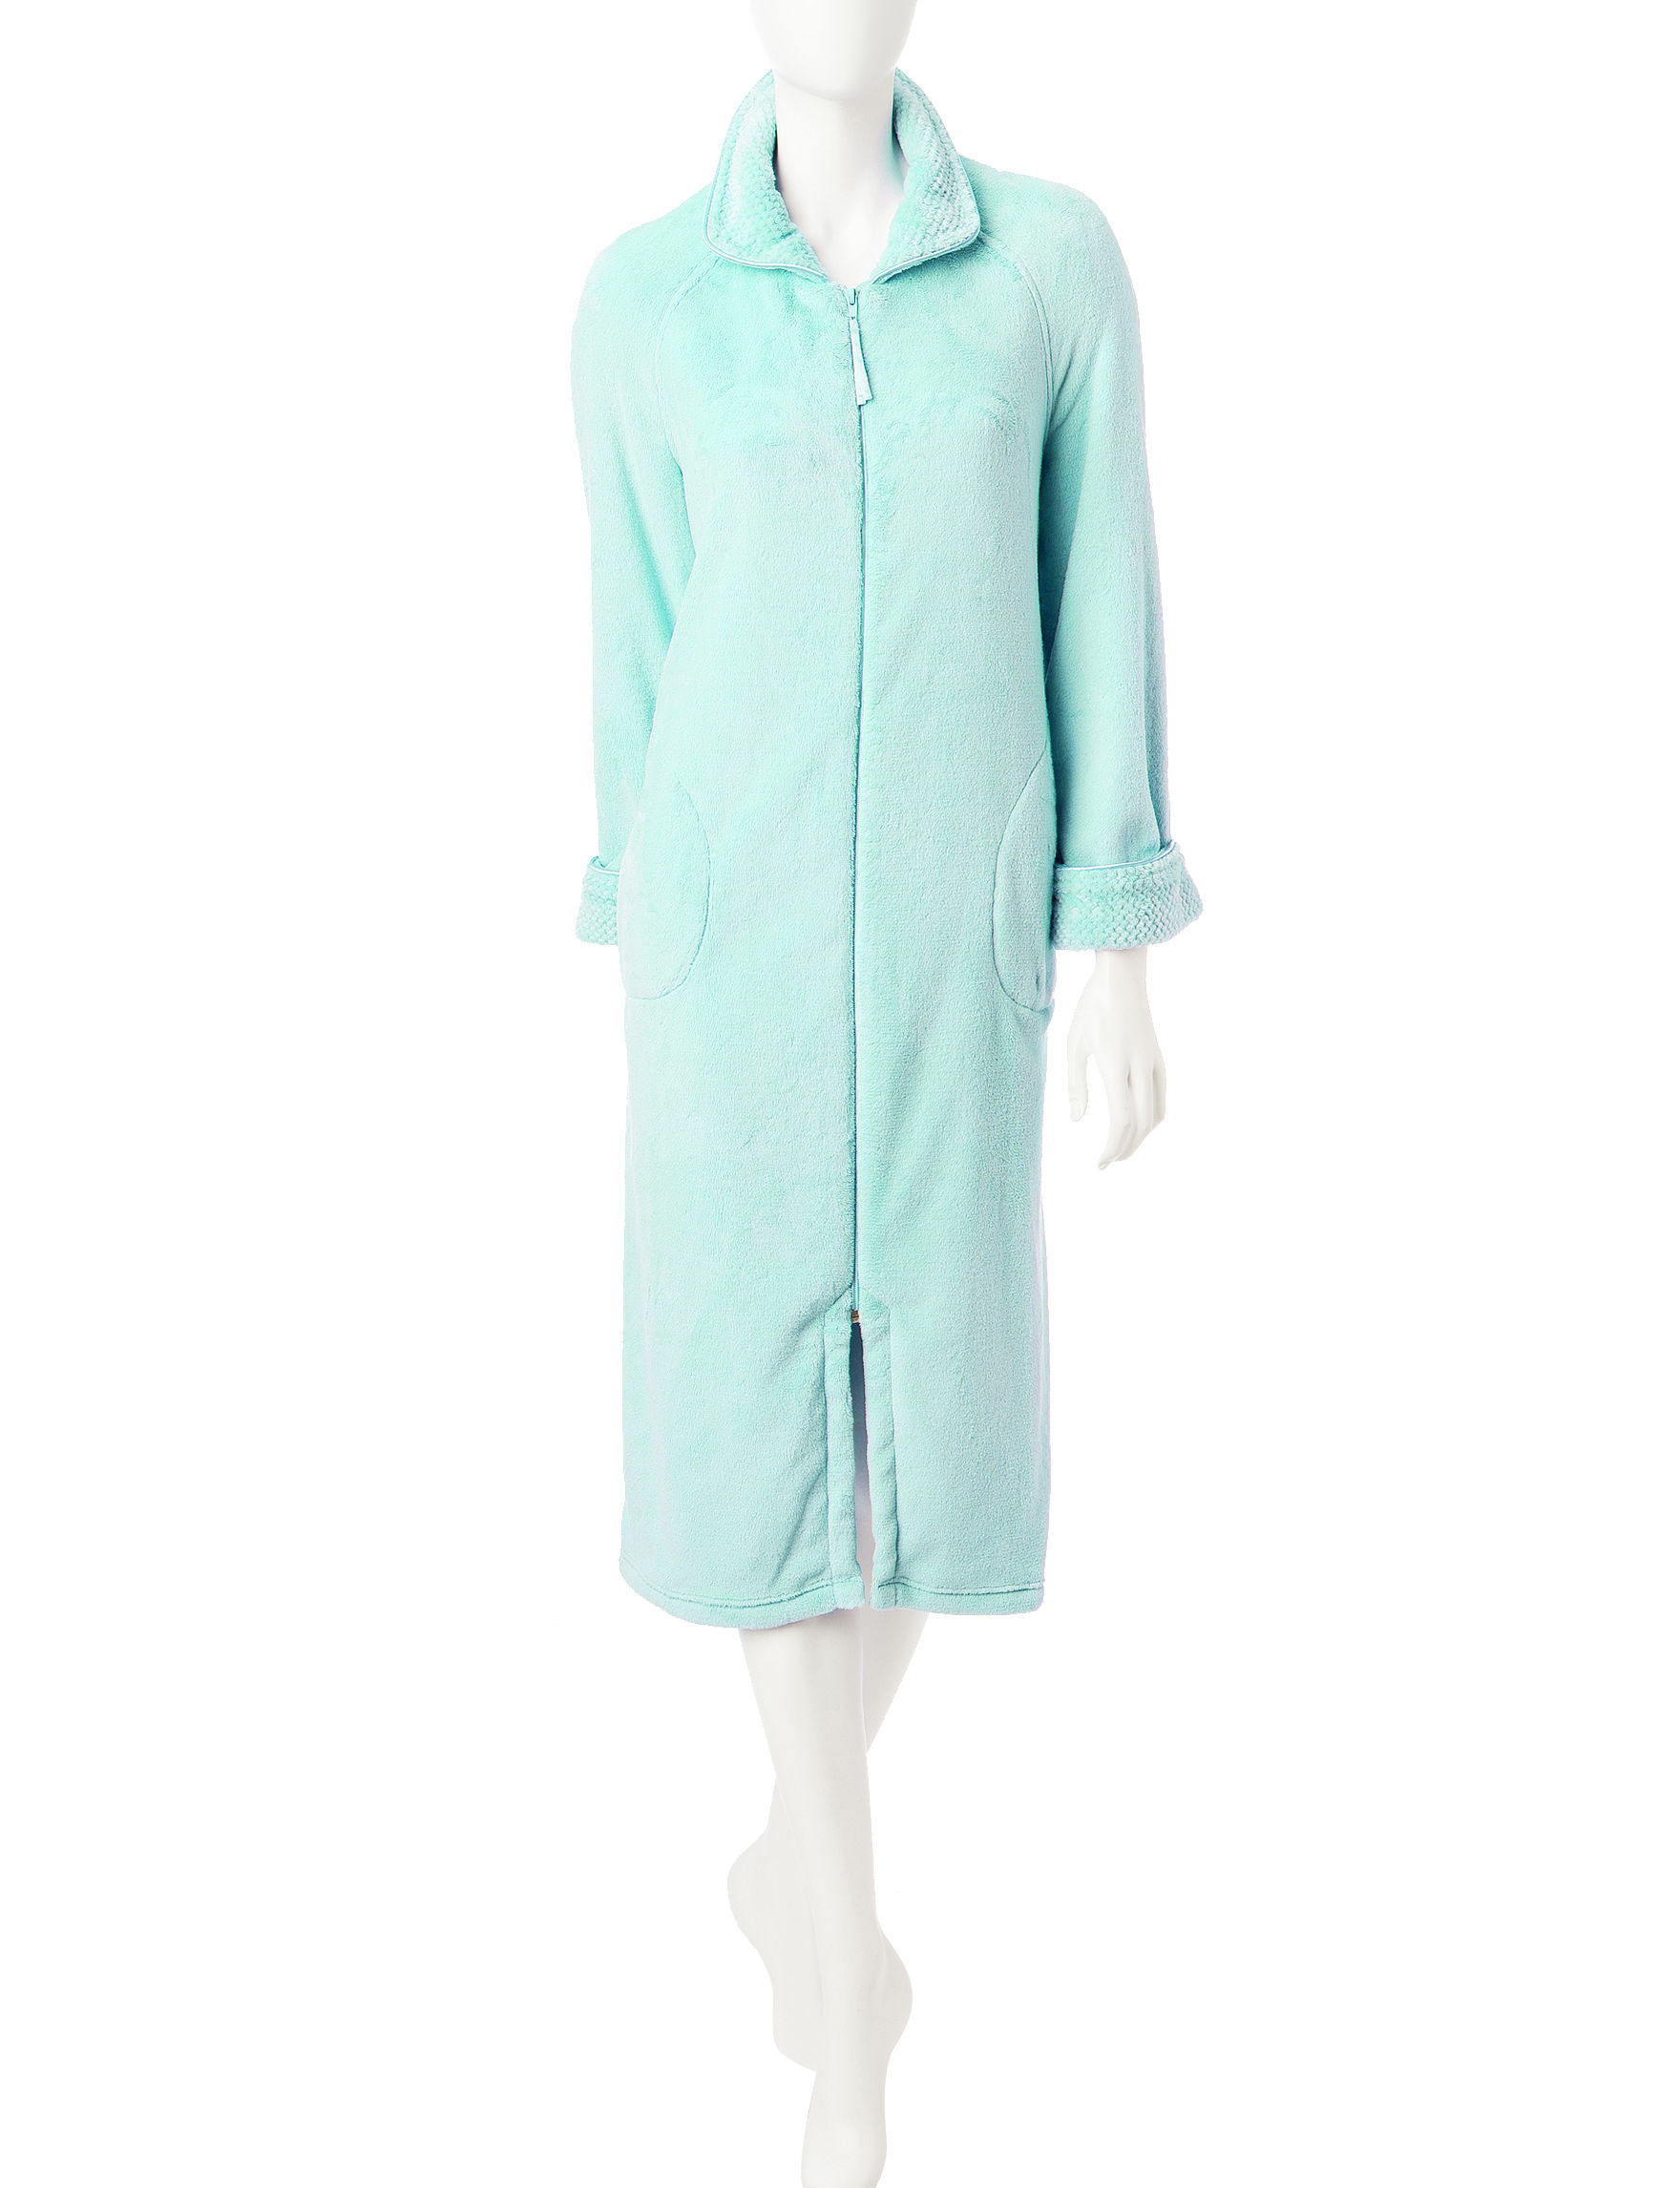 Rebecca Malone Green Robes, Wraps & Dusters